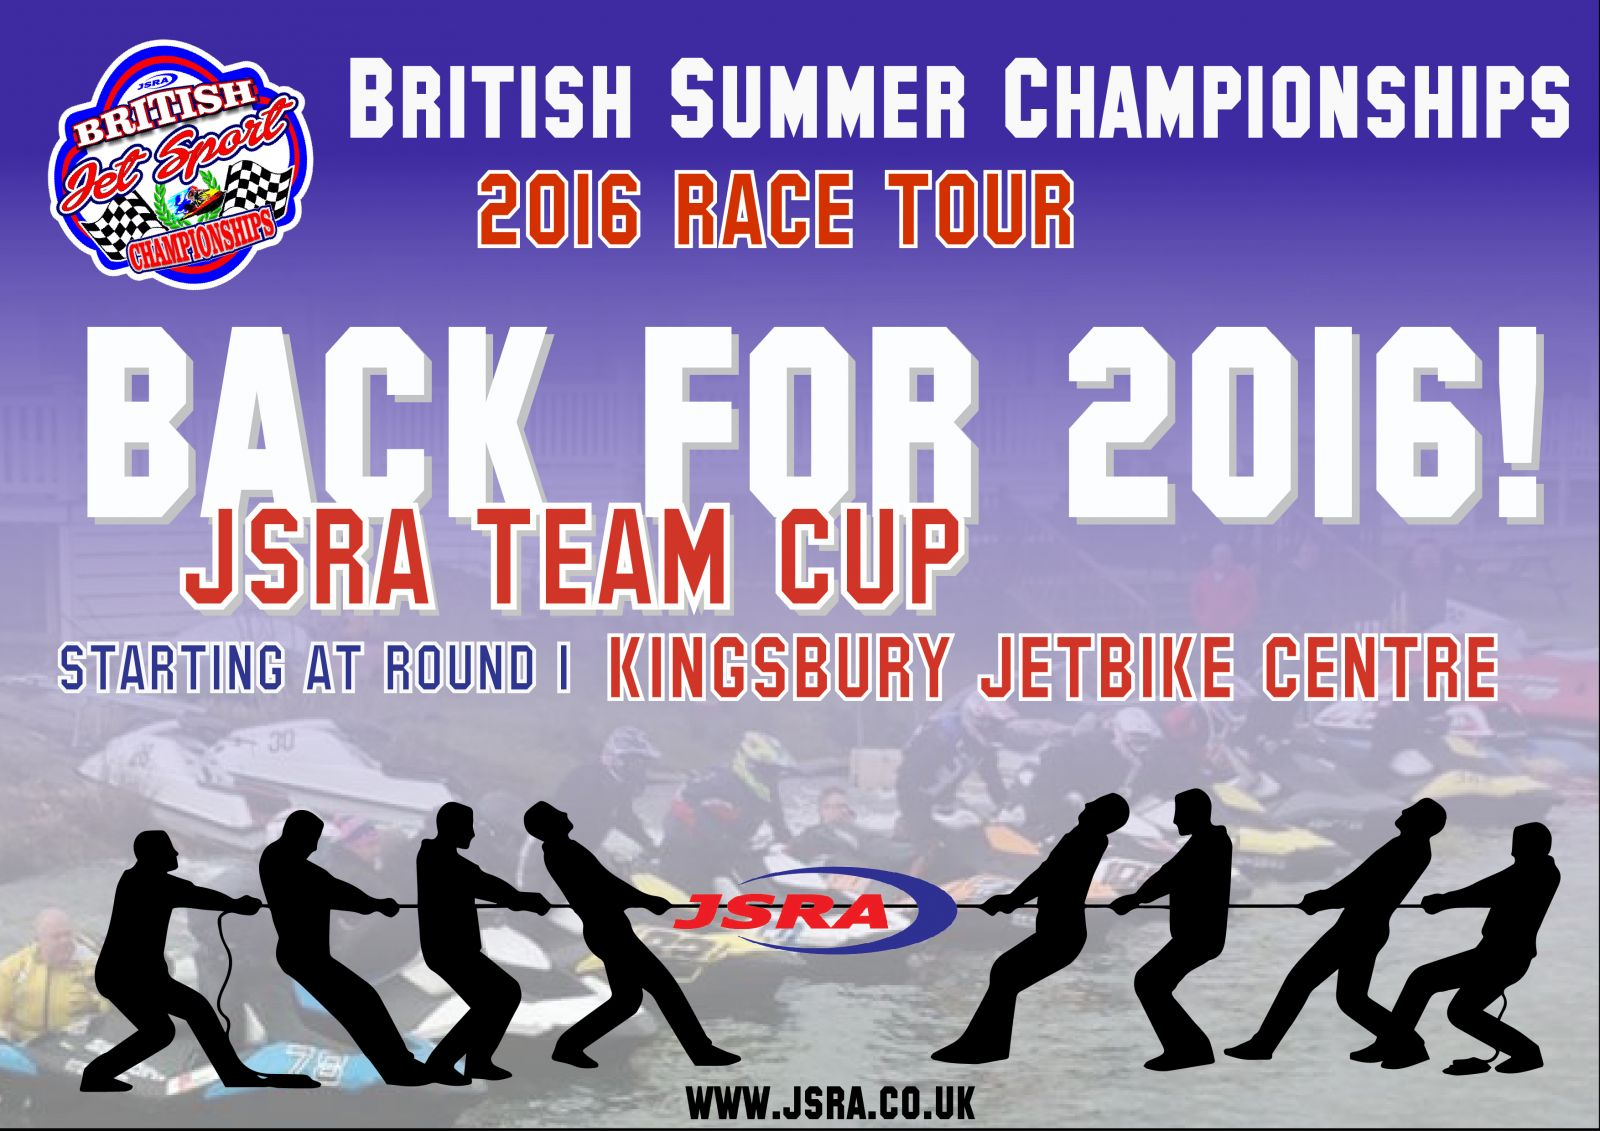 BACK FOR 2017!! The JSRA CLUB CUP!!